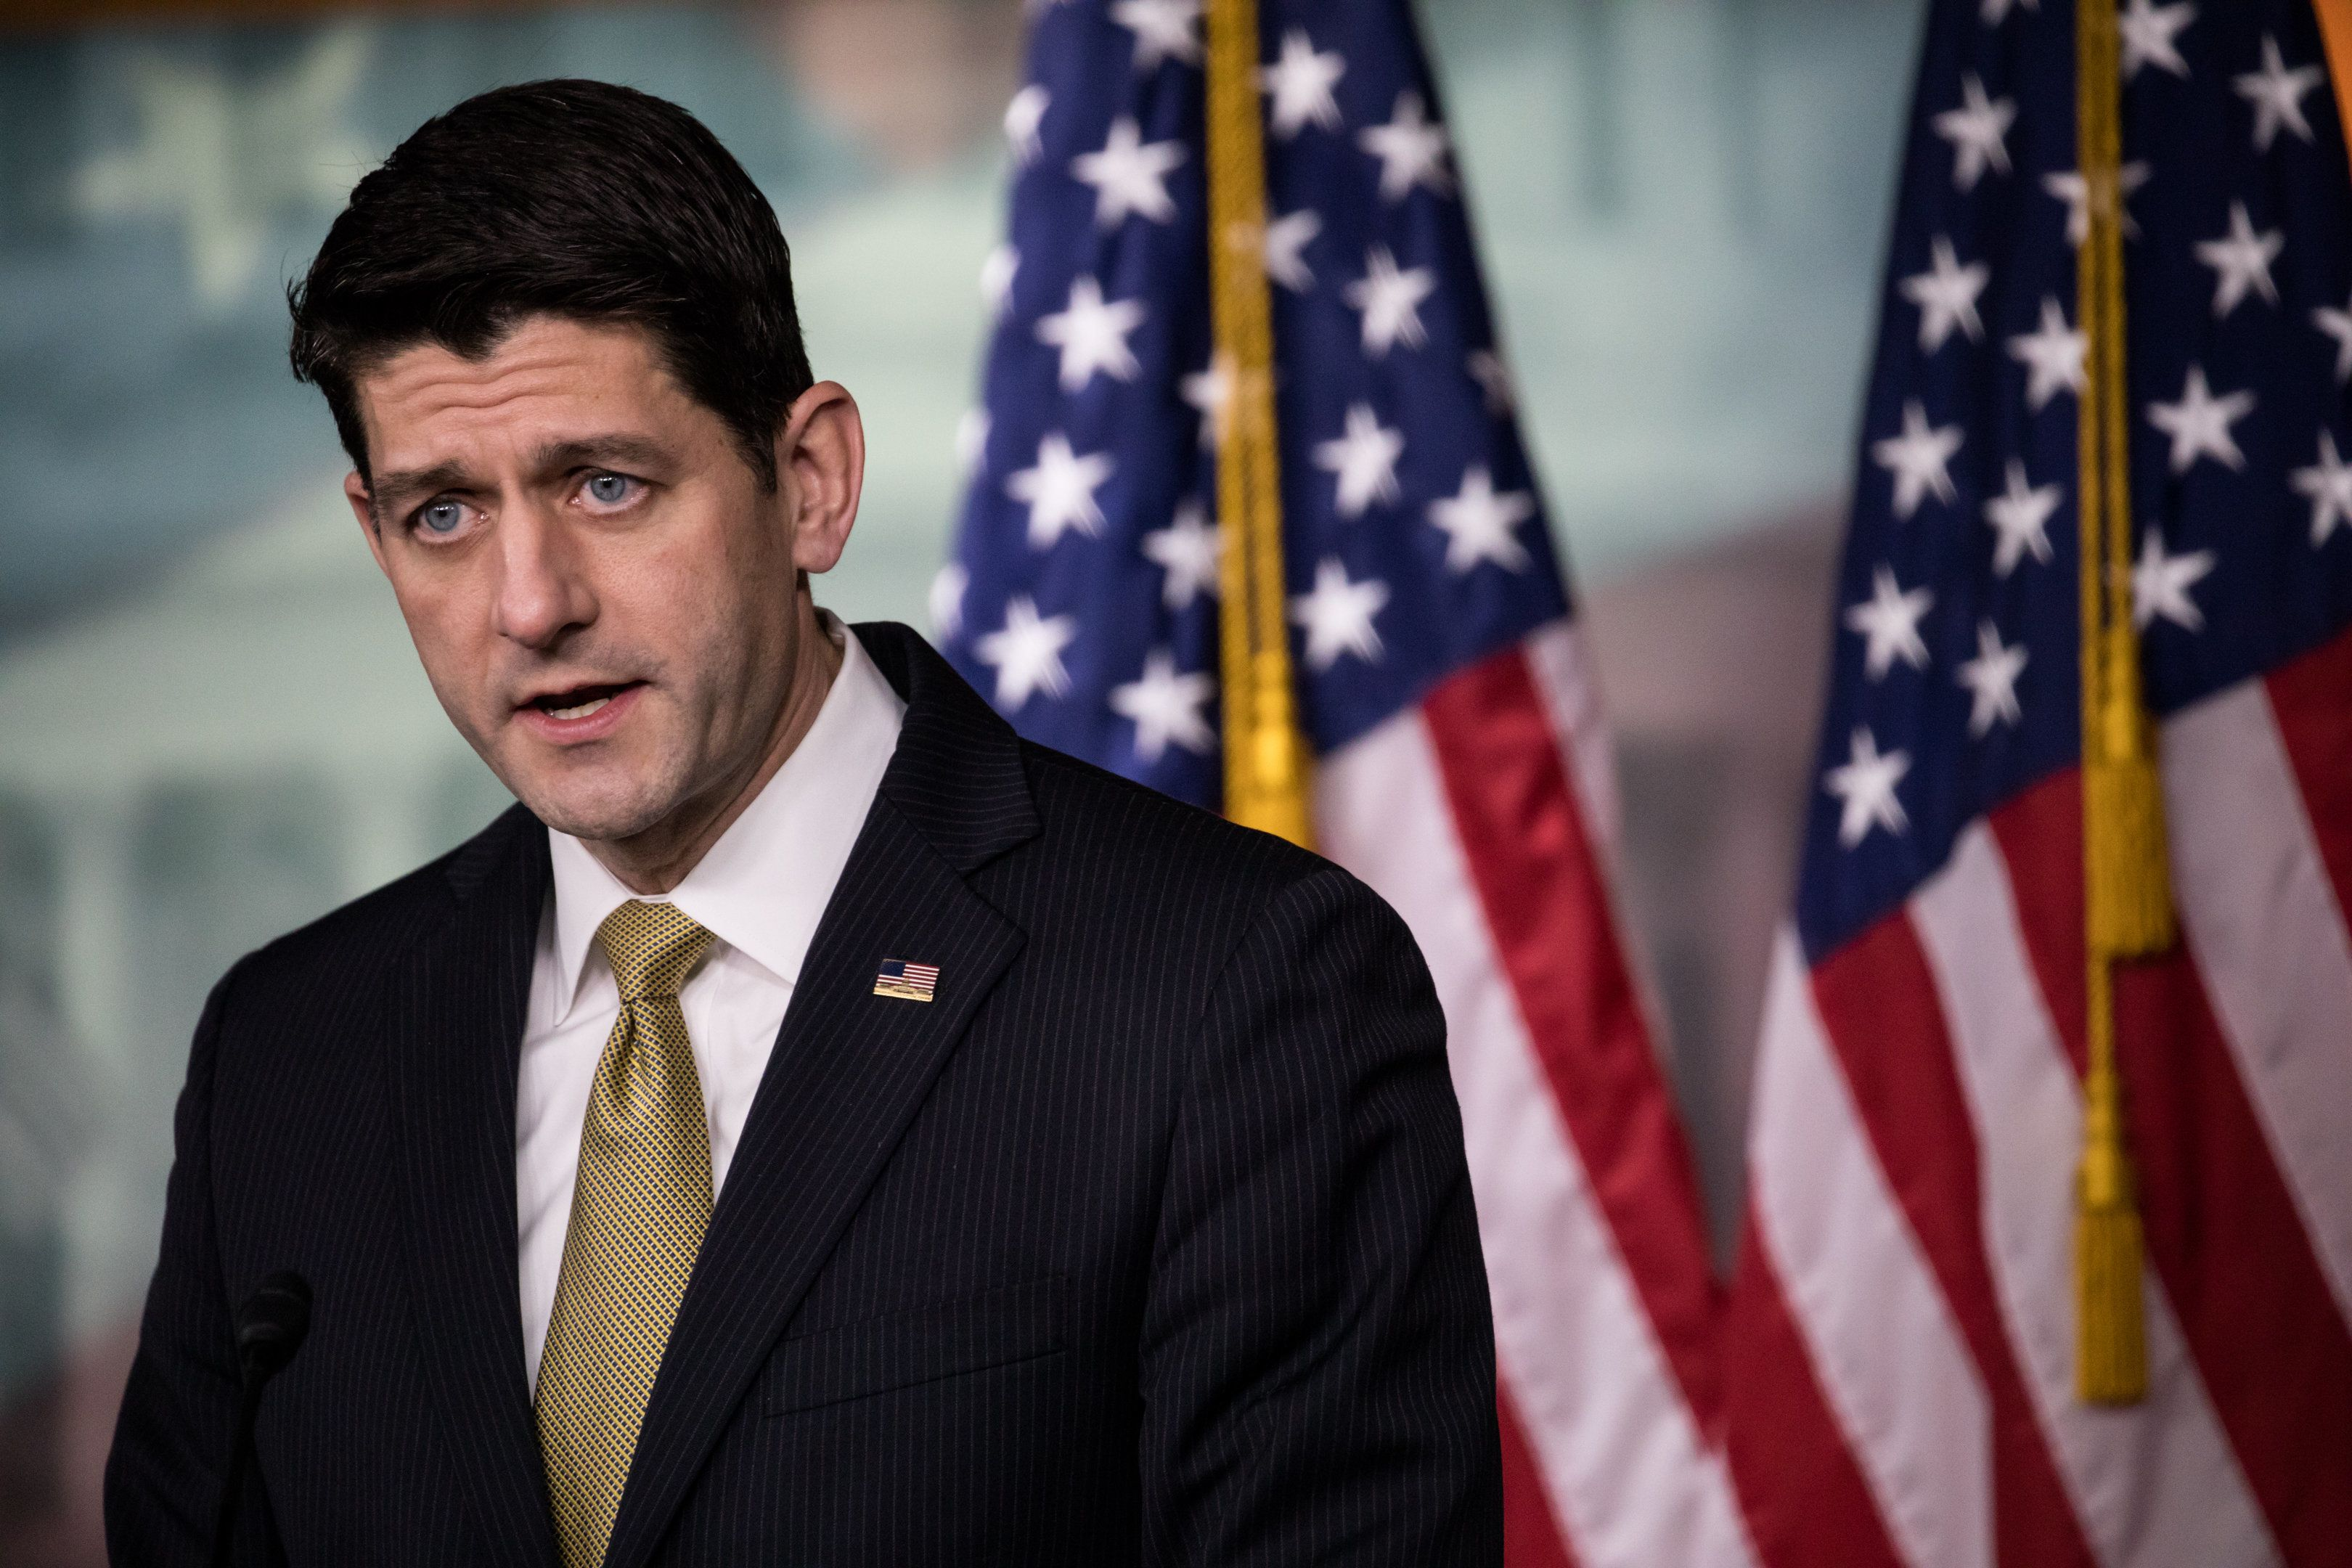 Paul Ryan, Speaker of the U.S. House of Representatives, held his weekly press conference with reporters, on Capitol Hill, on Thursday, January 18, 2018.  (Photo by Cheriss May/NurPhoto via Getty Images)